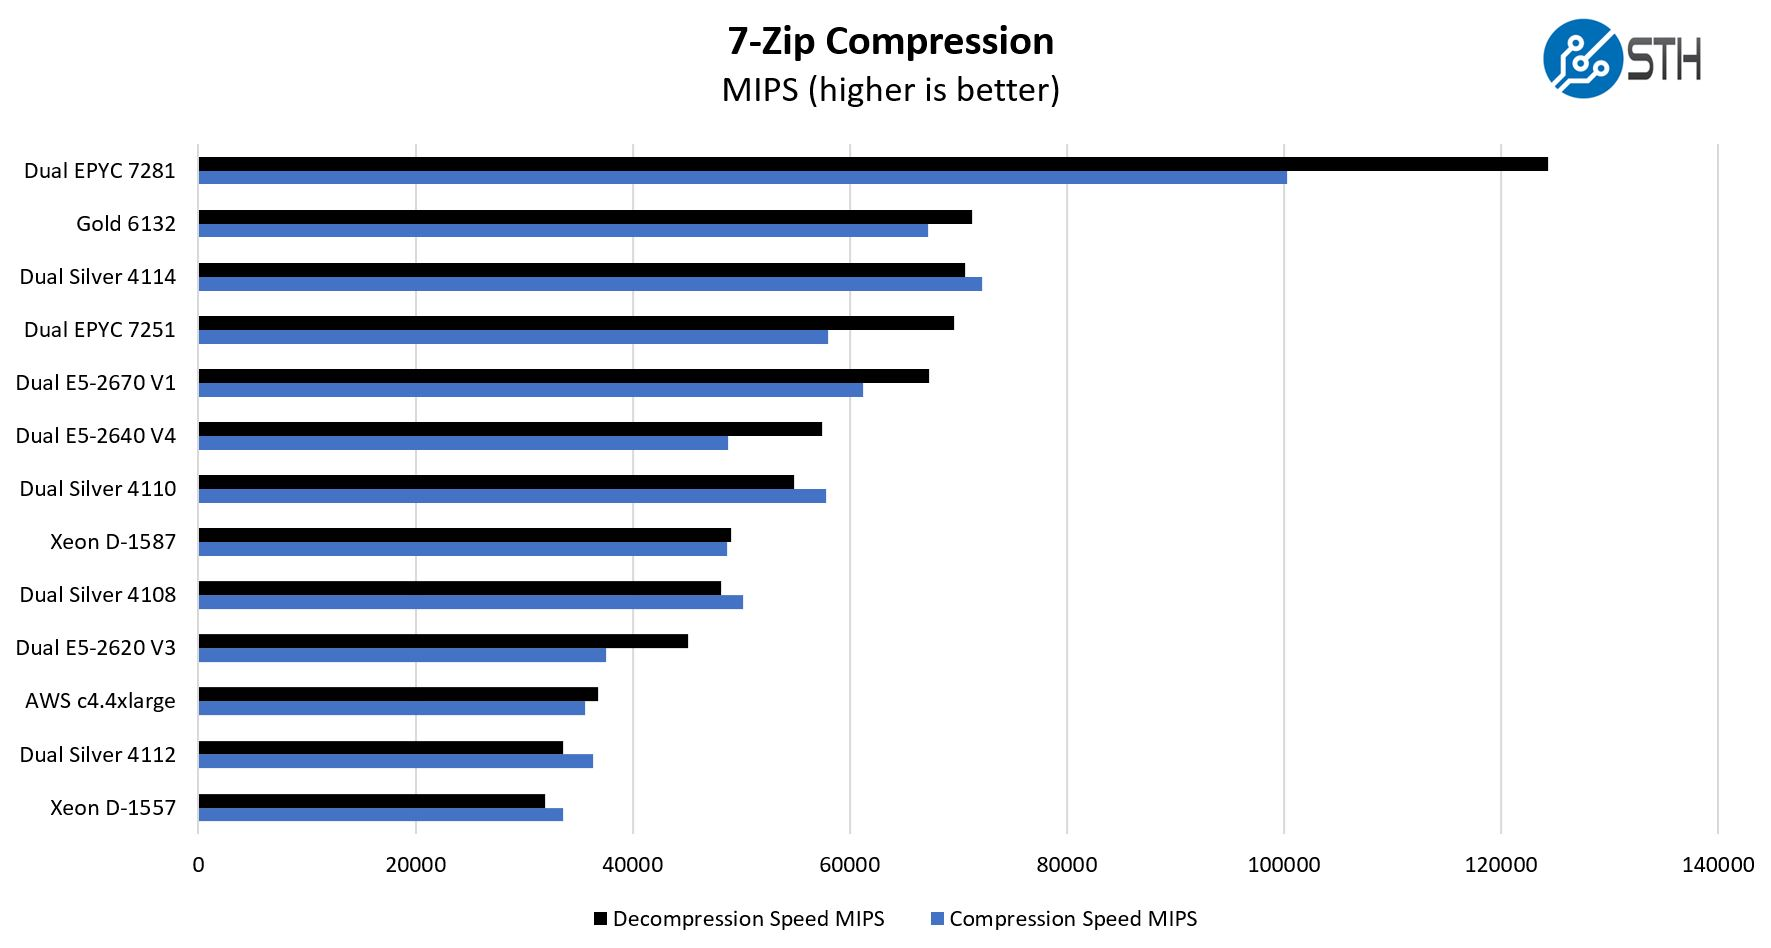 Dual AMD EPYC 7251 7zip Compression Benchmarks